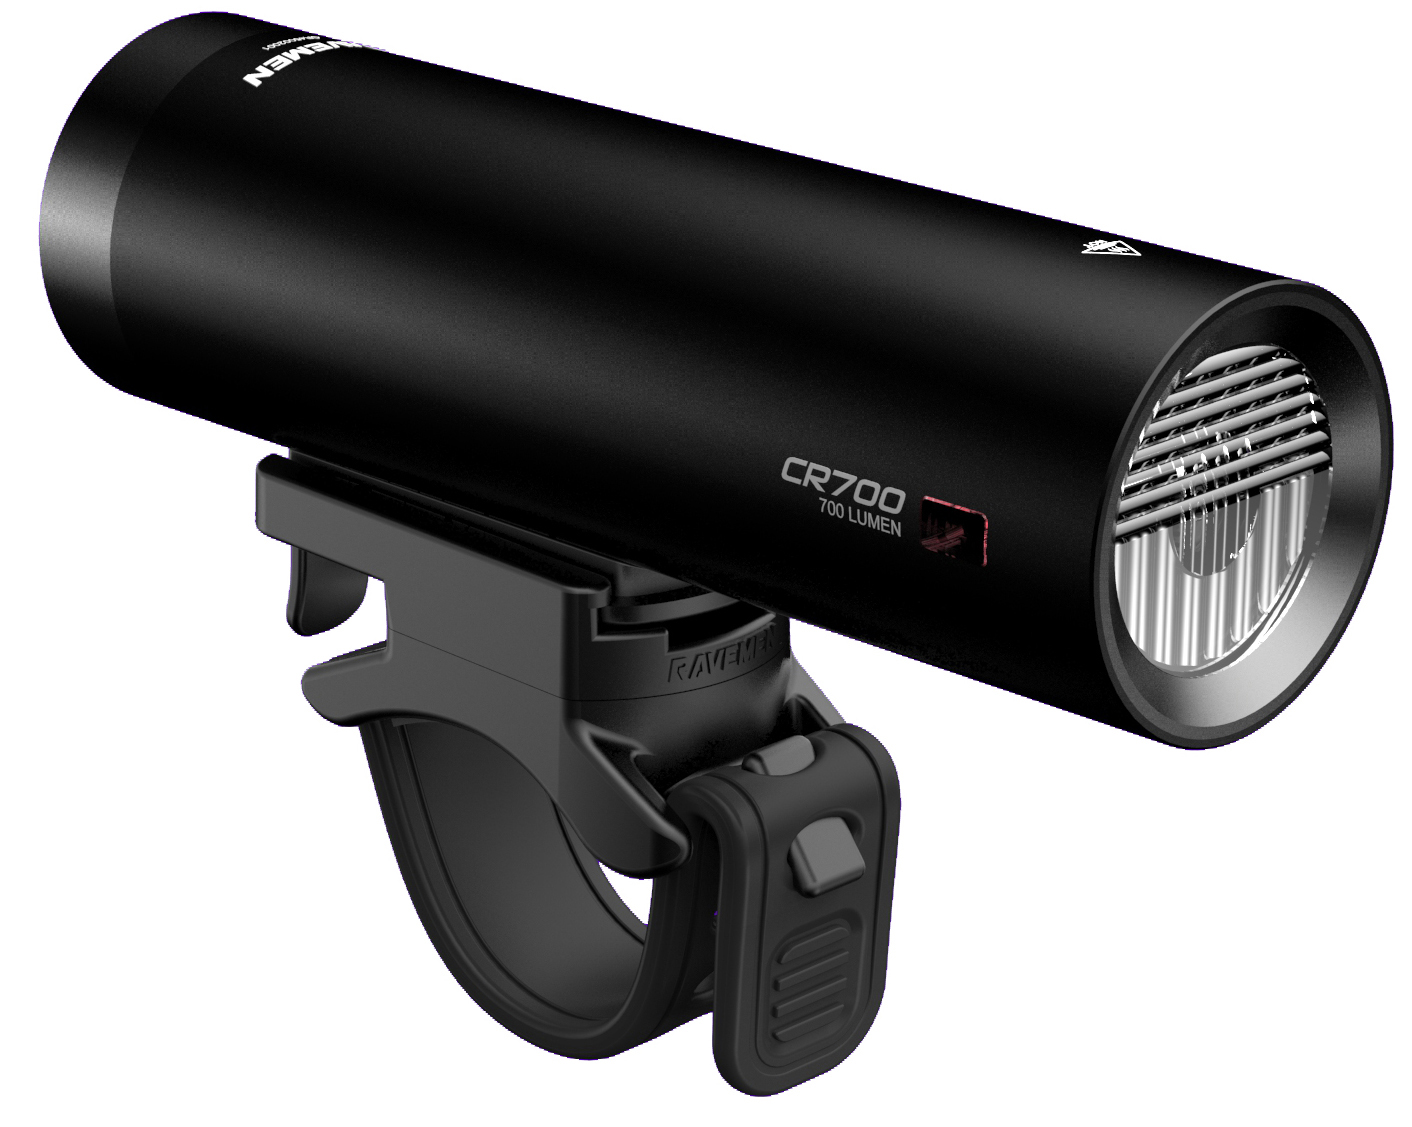 Ravemen CR700 Rechargeable Front Light